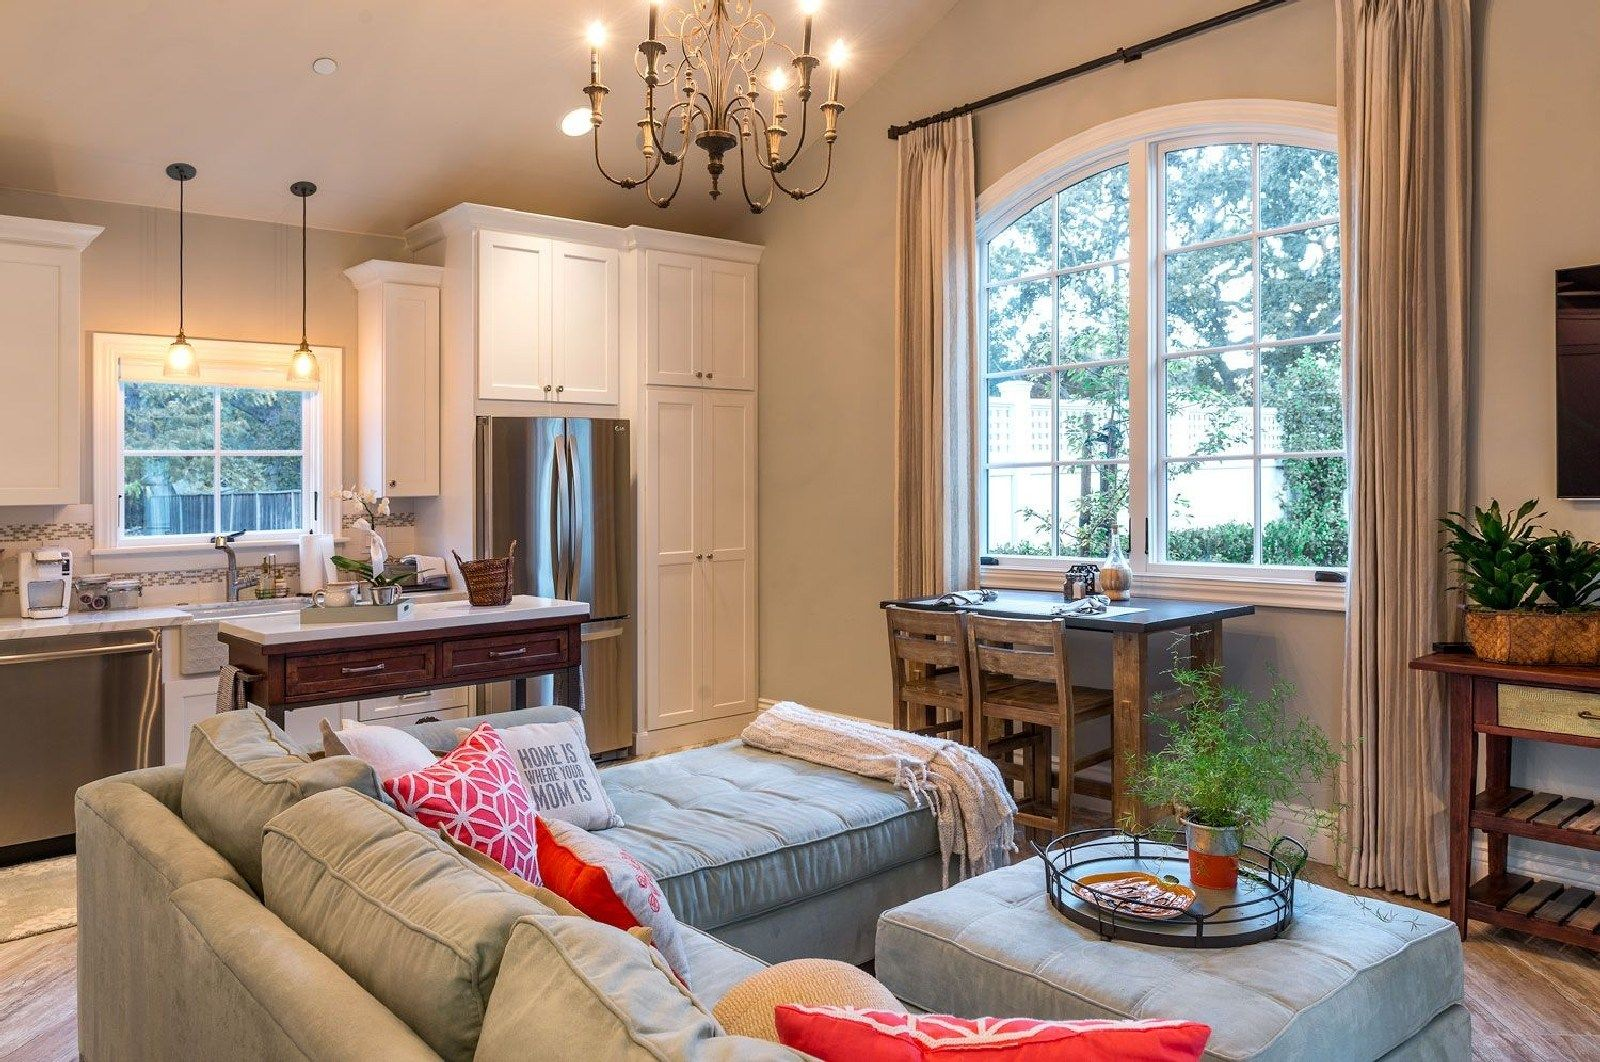 Best Awesome Carriage House Interior Ideas (5) | Backyard ...